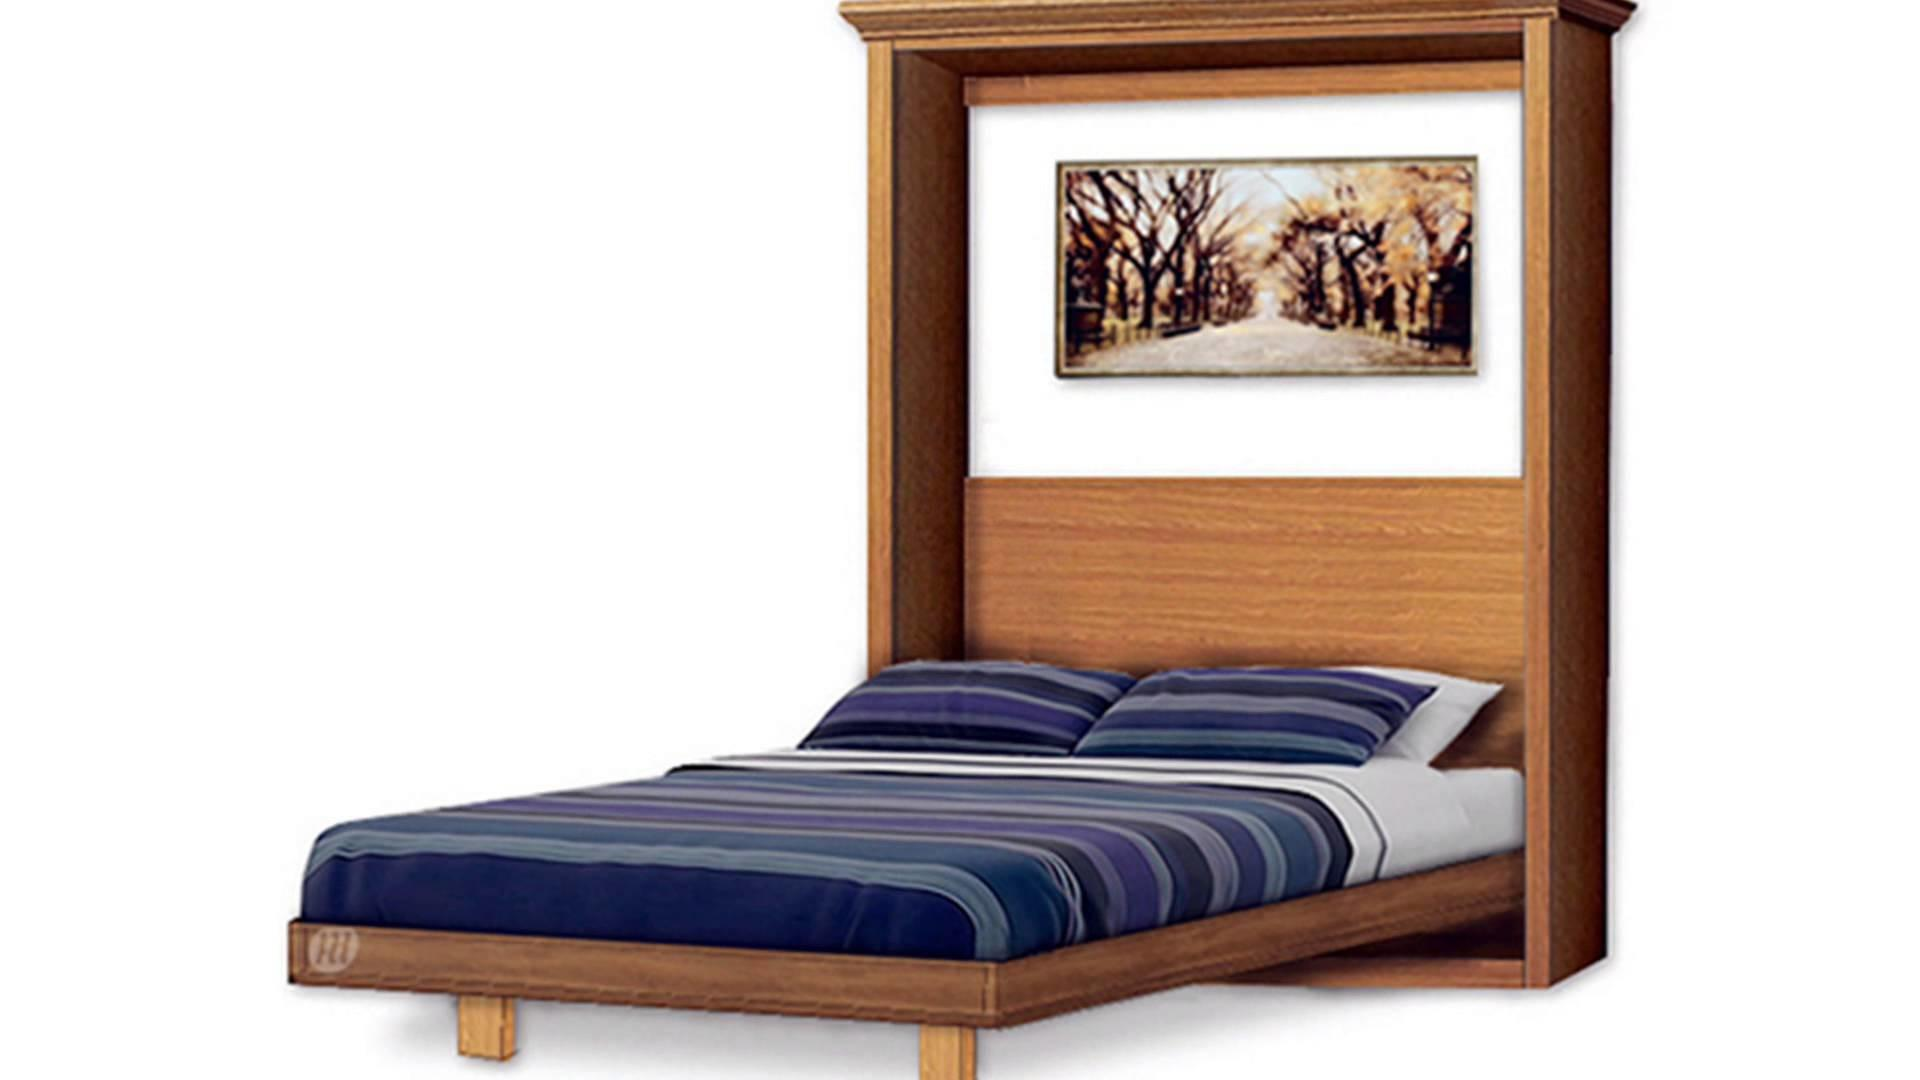 Build Murphy Wall Bed Yourself Under 300 Plans Design